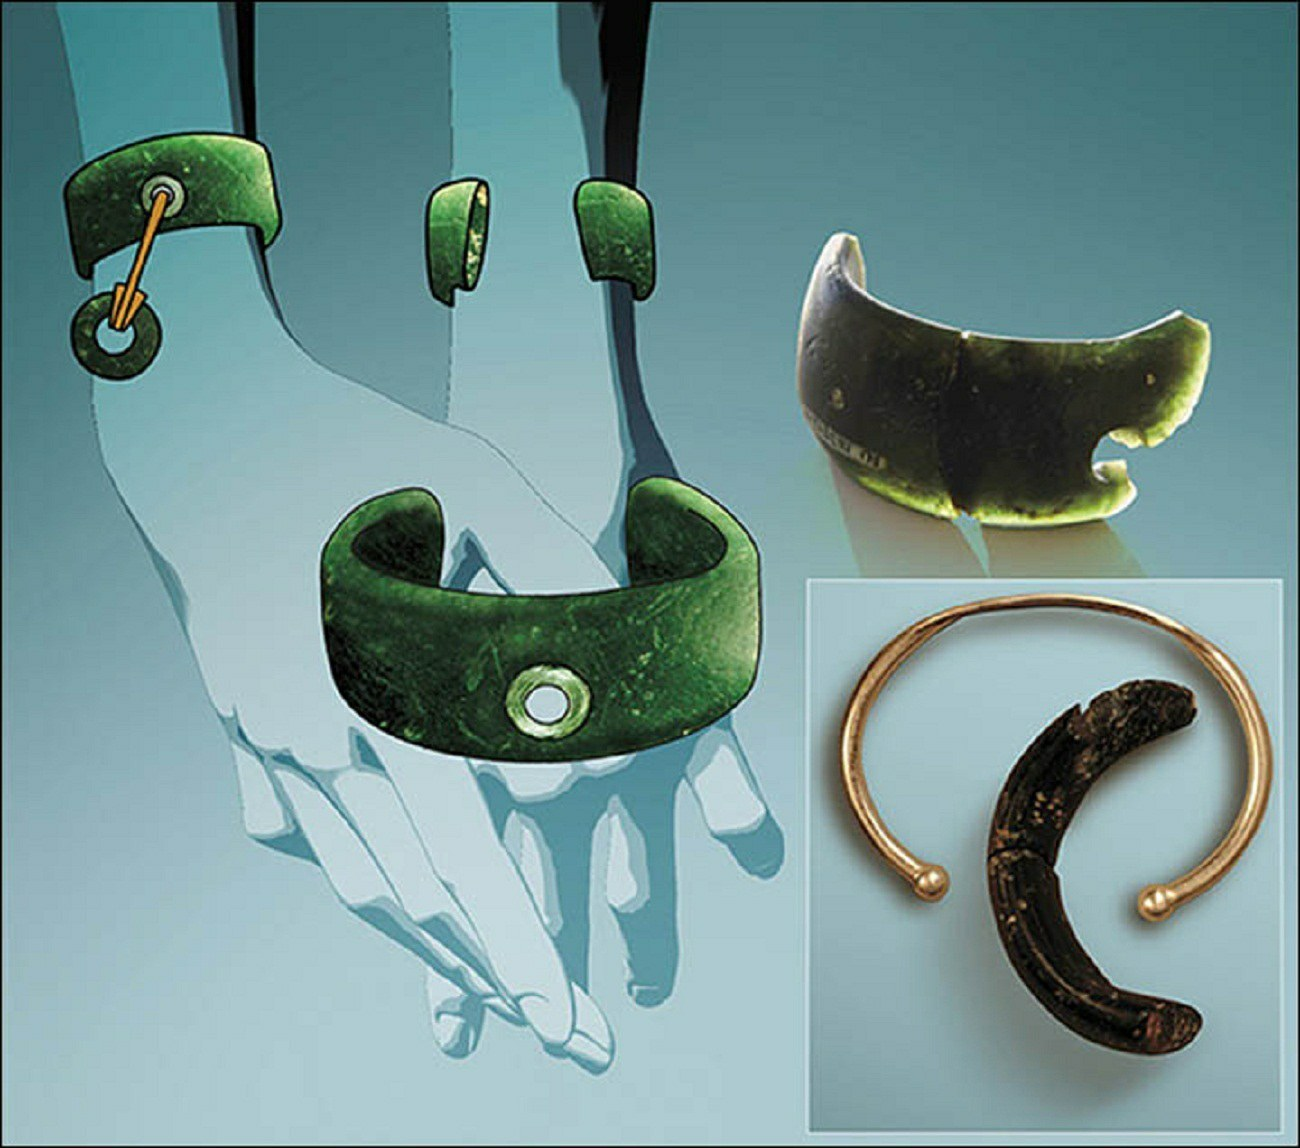 General reconstruction of the view of the bracelet and compraison with the moders bracelet.Pictures: Anatoly Derevyanko and Mikhail Shunkov, Anastasia Abdulmanova